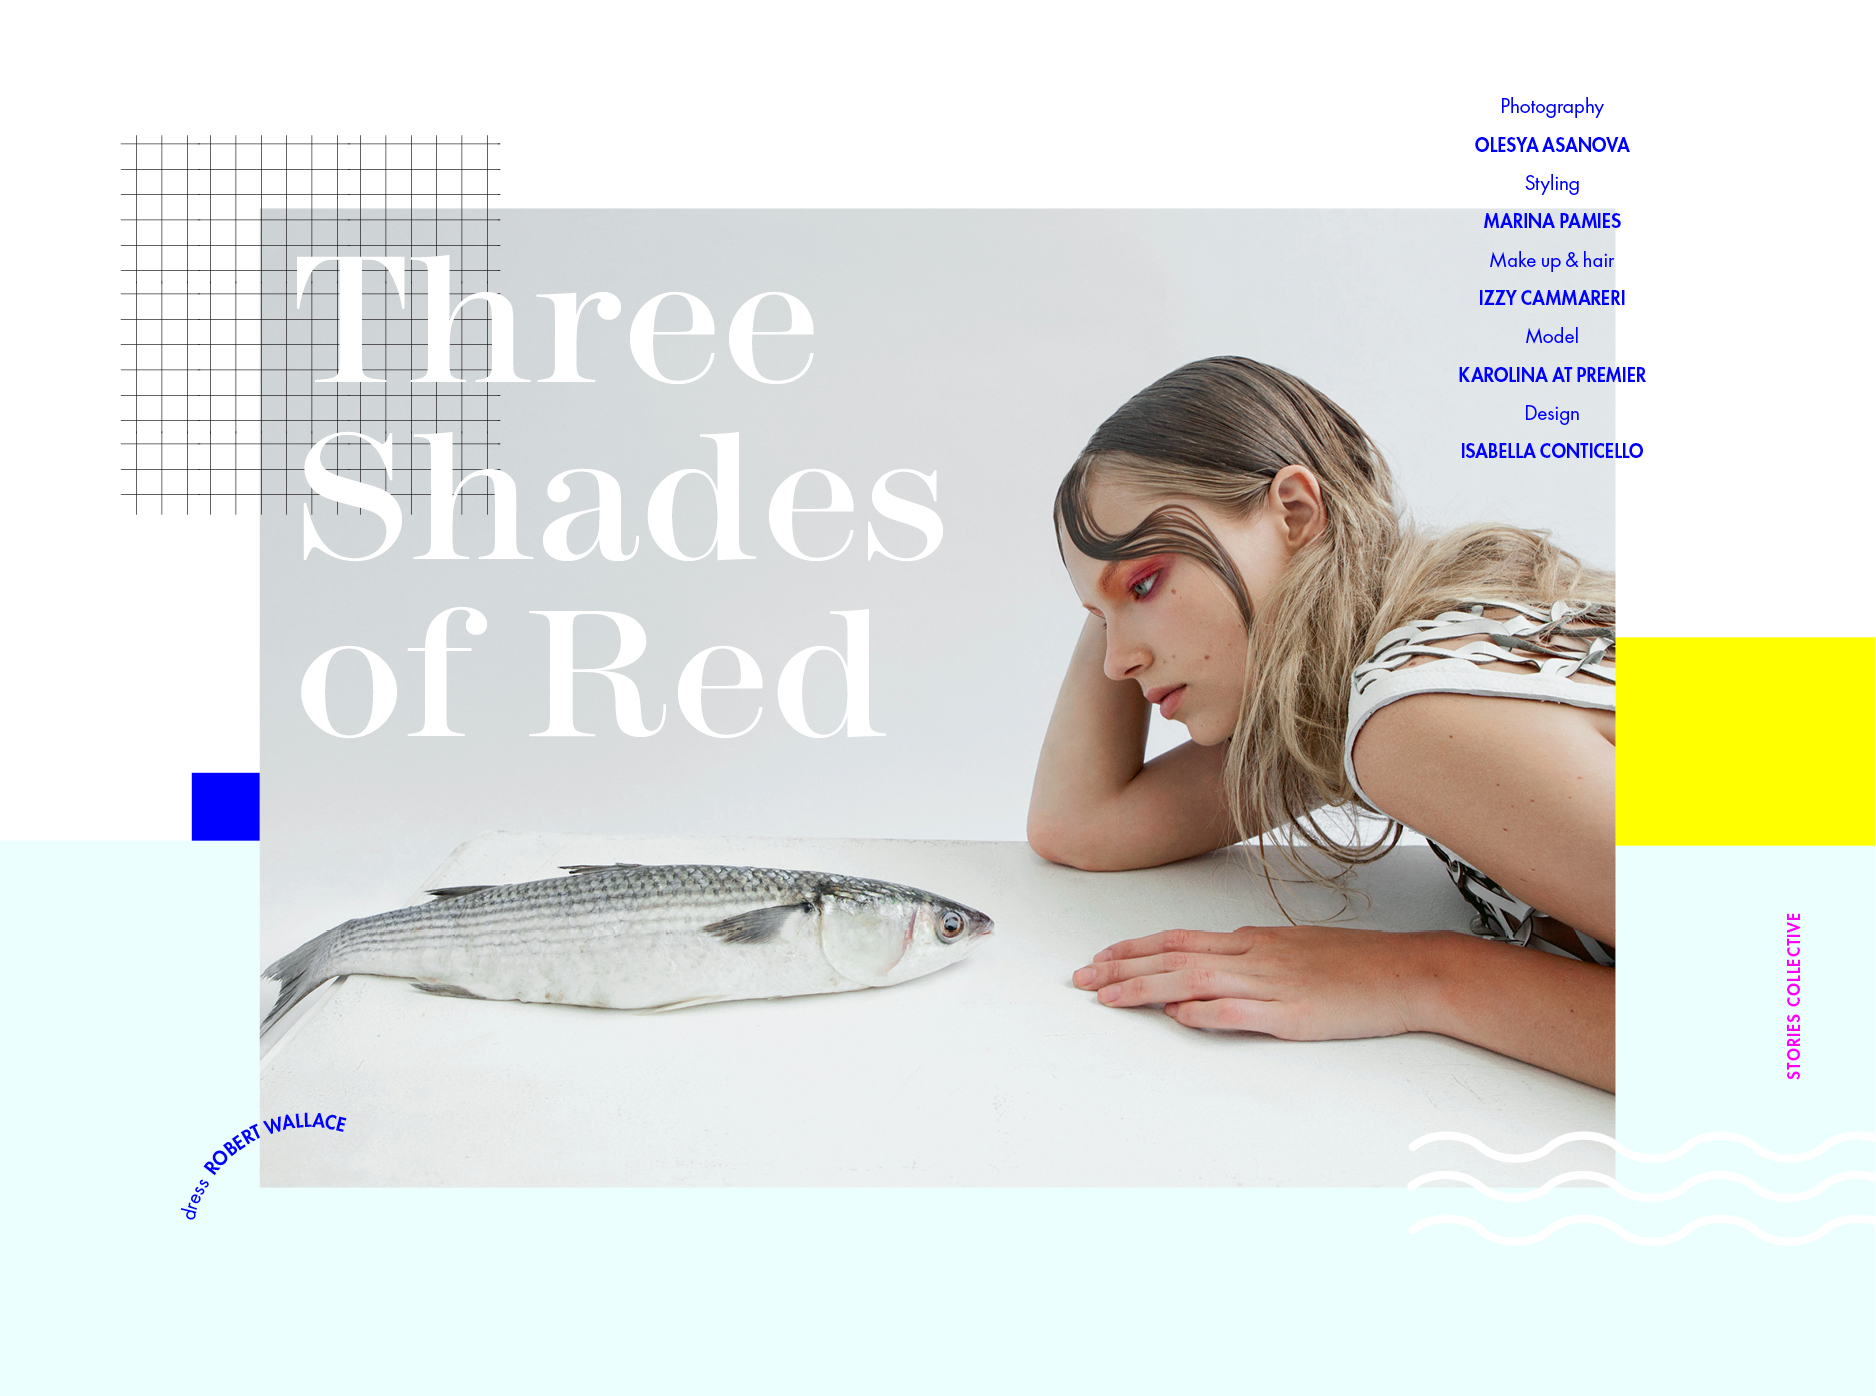 A Time of Change / Three Shades of Red